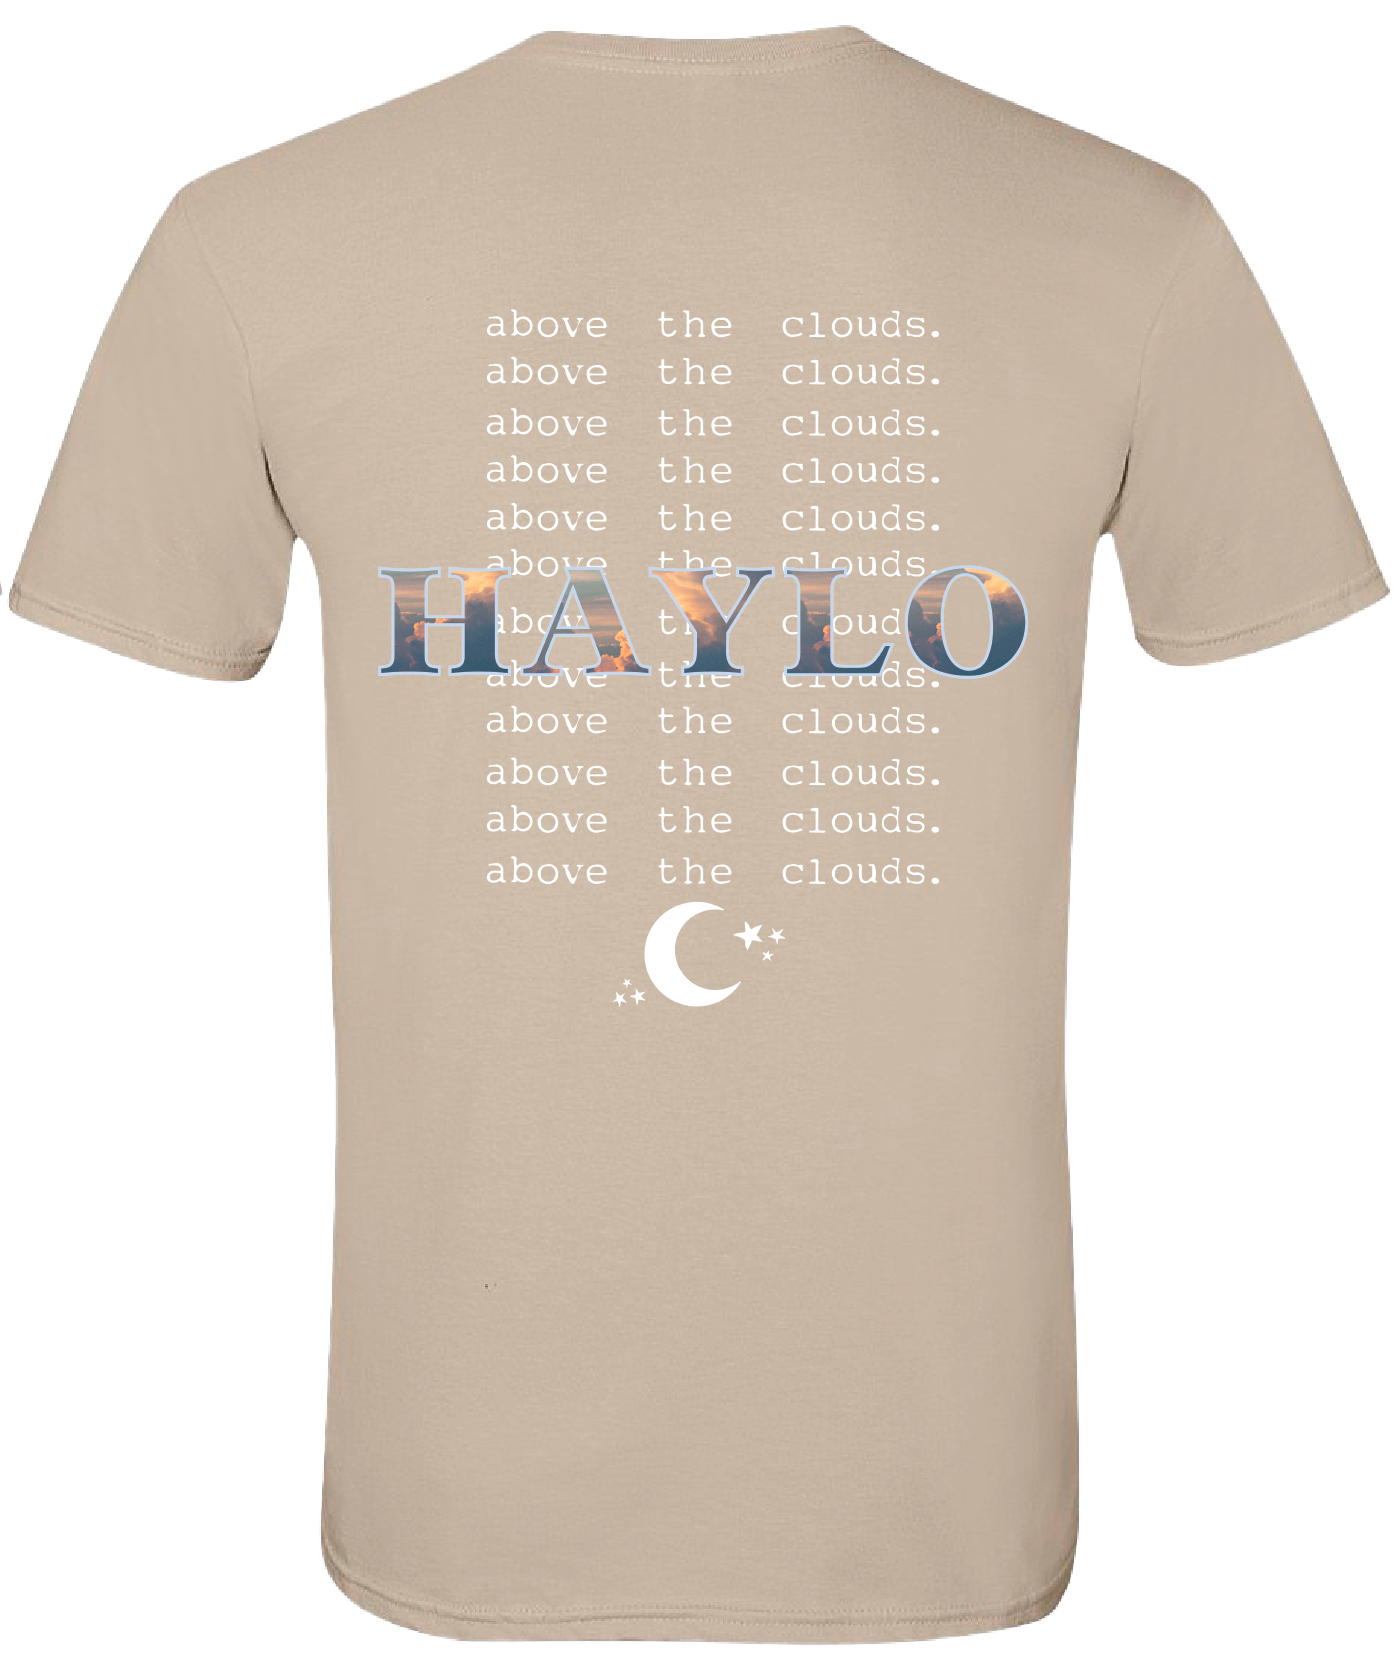 Haylo Band Tee